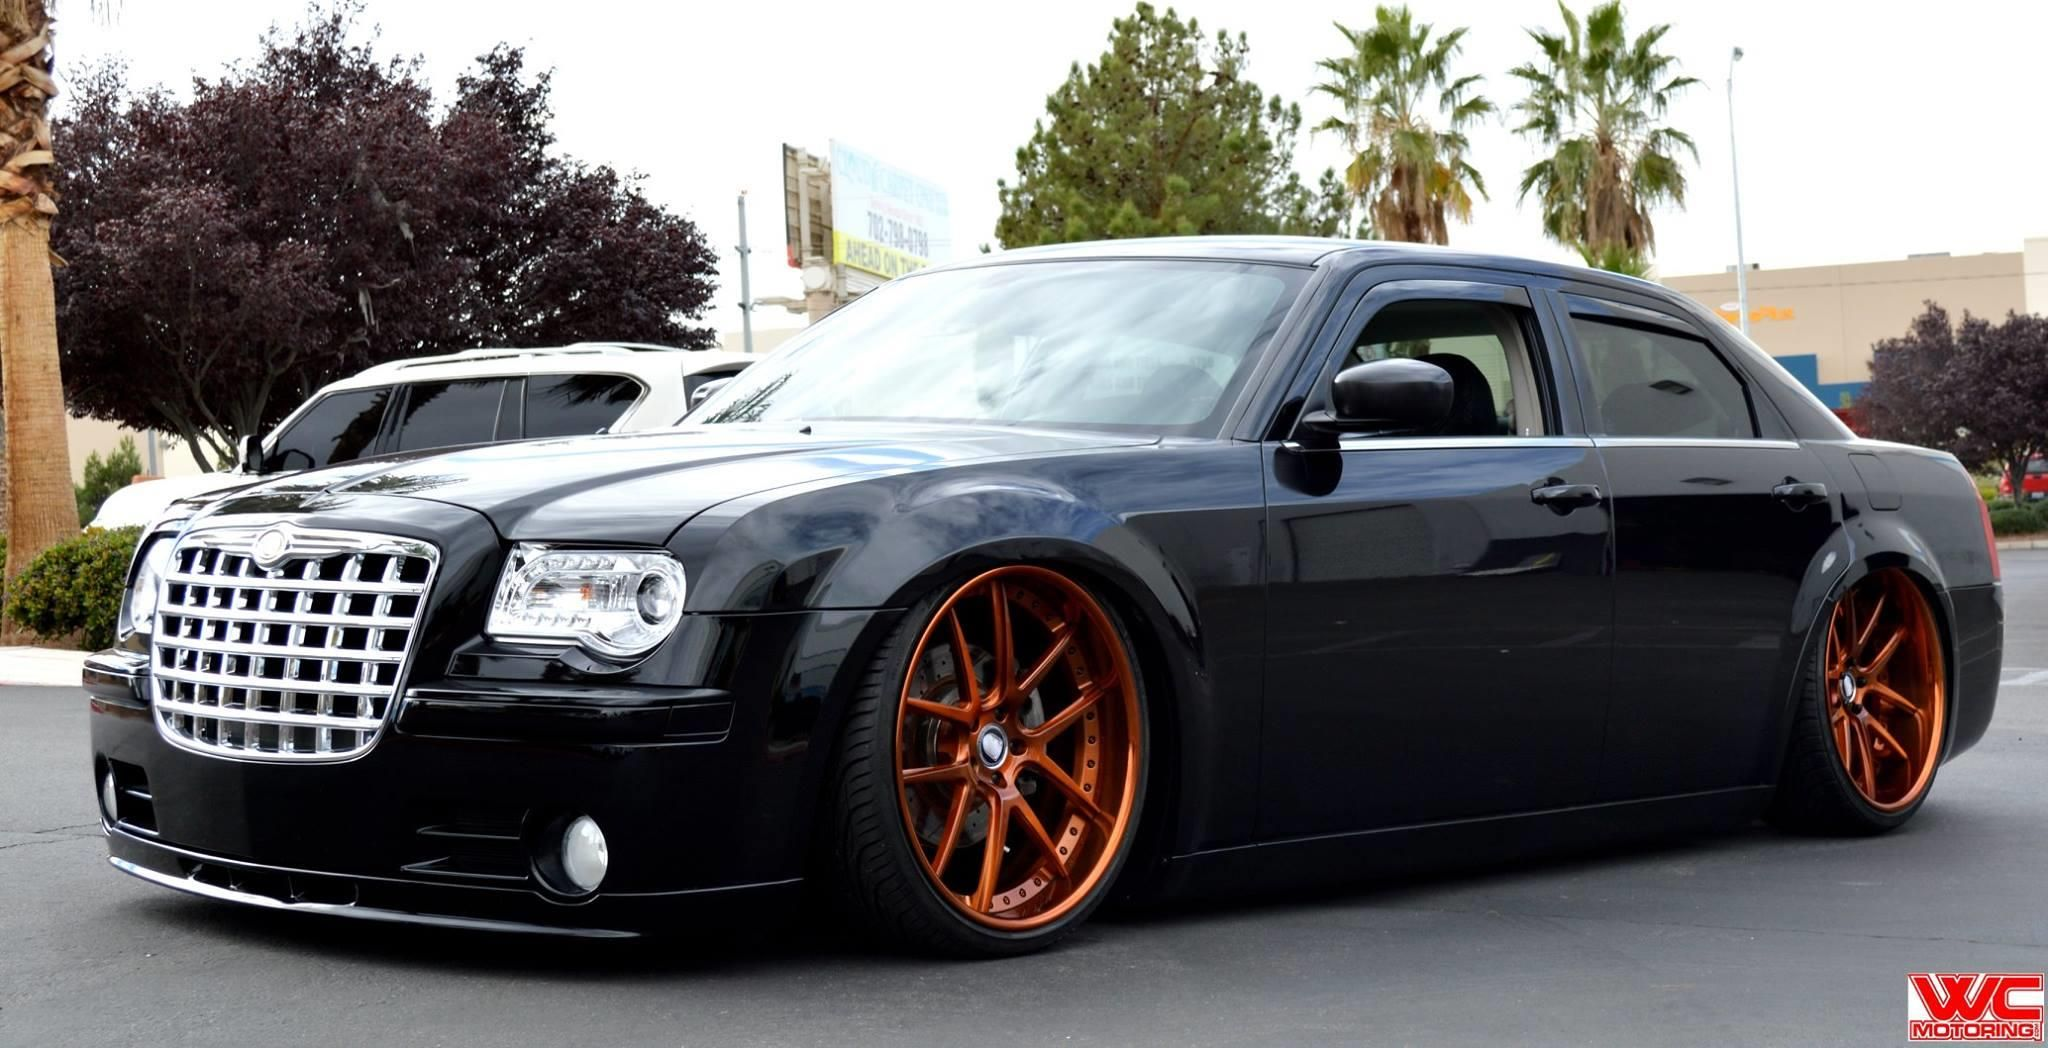 2008 Chrysler 300c Bagged With 3pc Nutek Wheels Wc Motoring